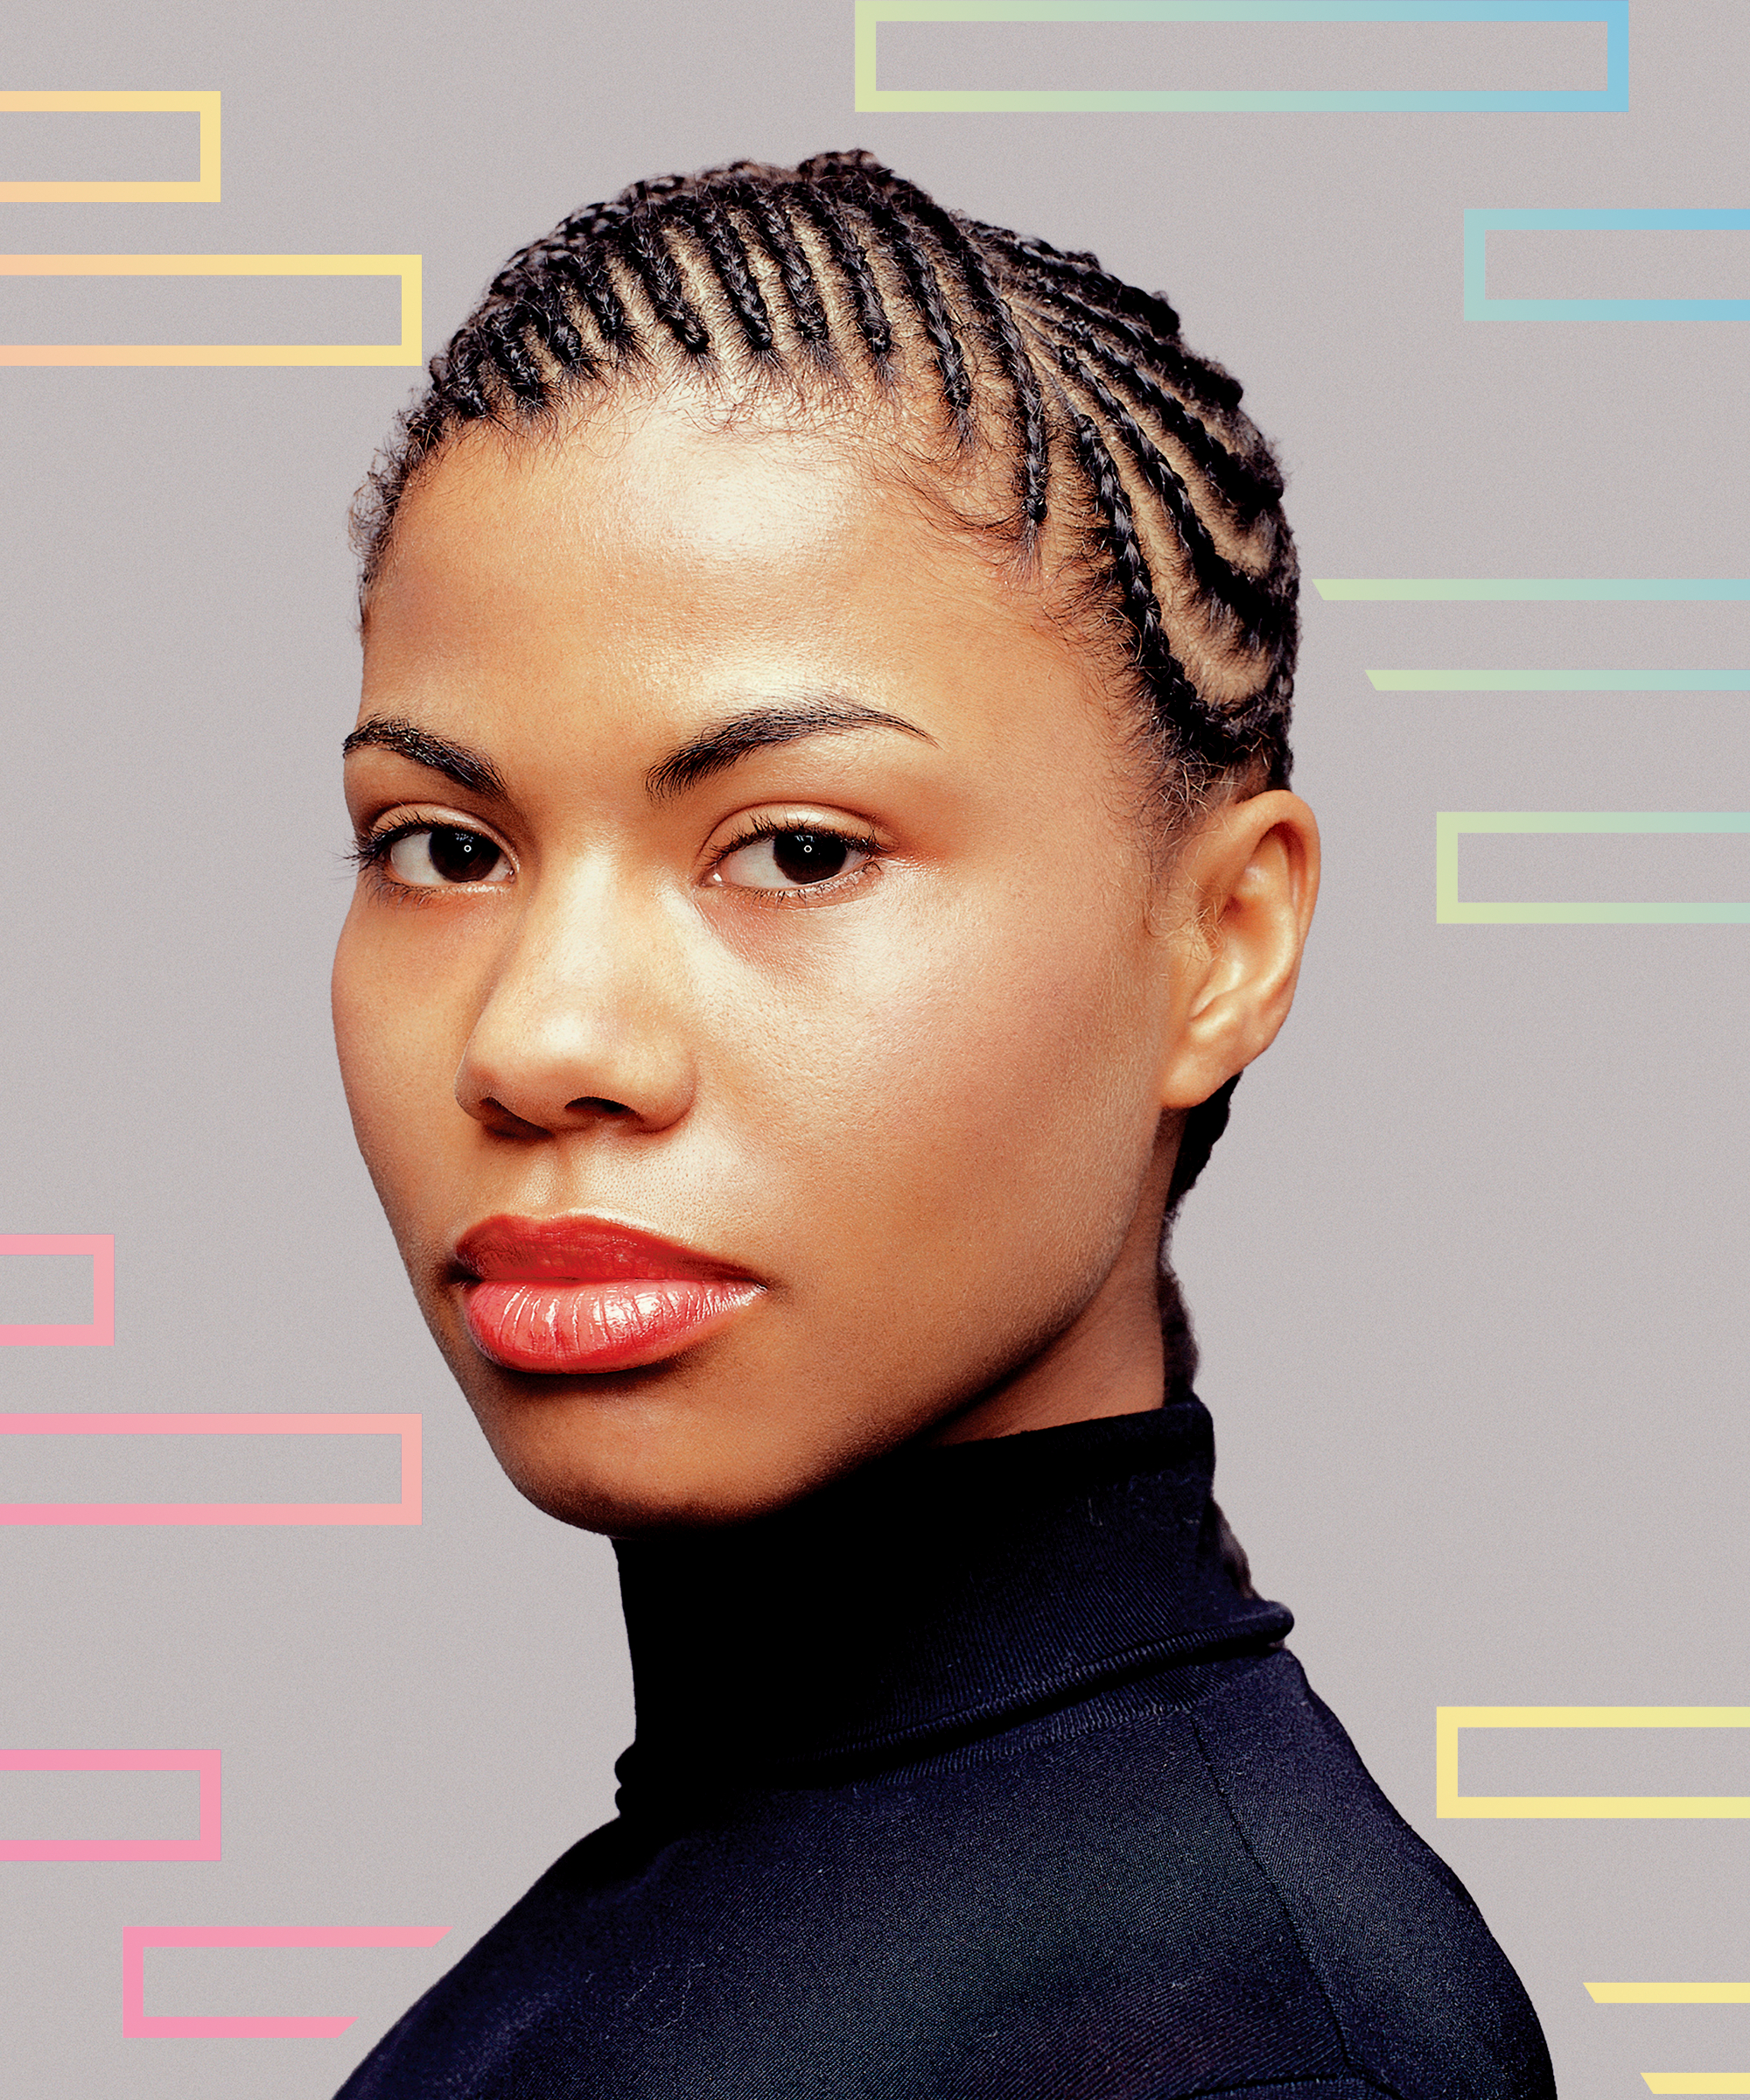 Braids Hairstyles Differences – Cornrows French Crochet Regarding Recent Cornrow Fishtail Side Braid Hairstyles (View 11 of 20)